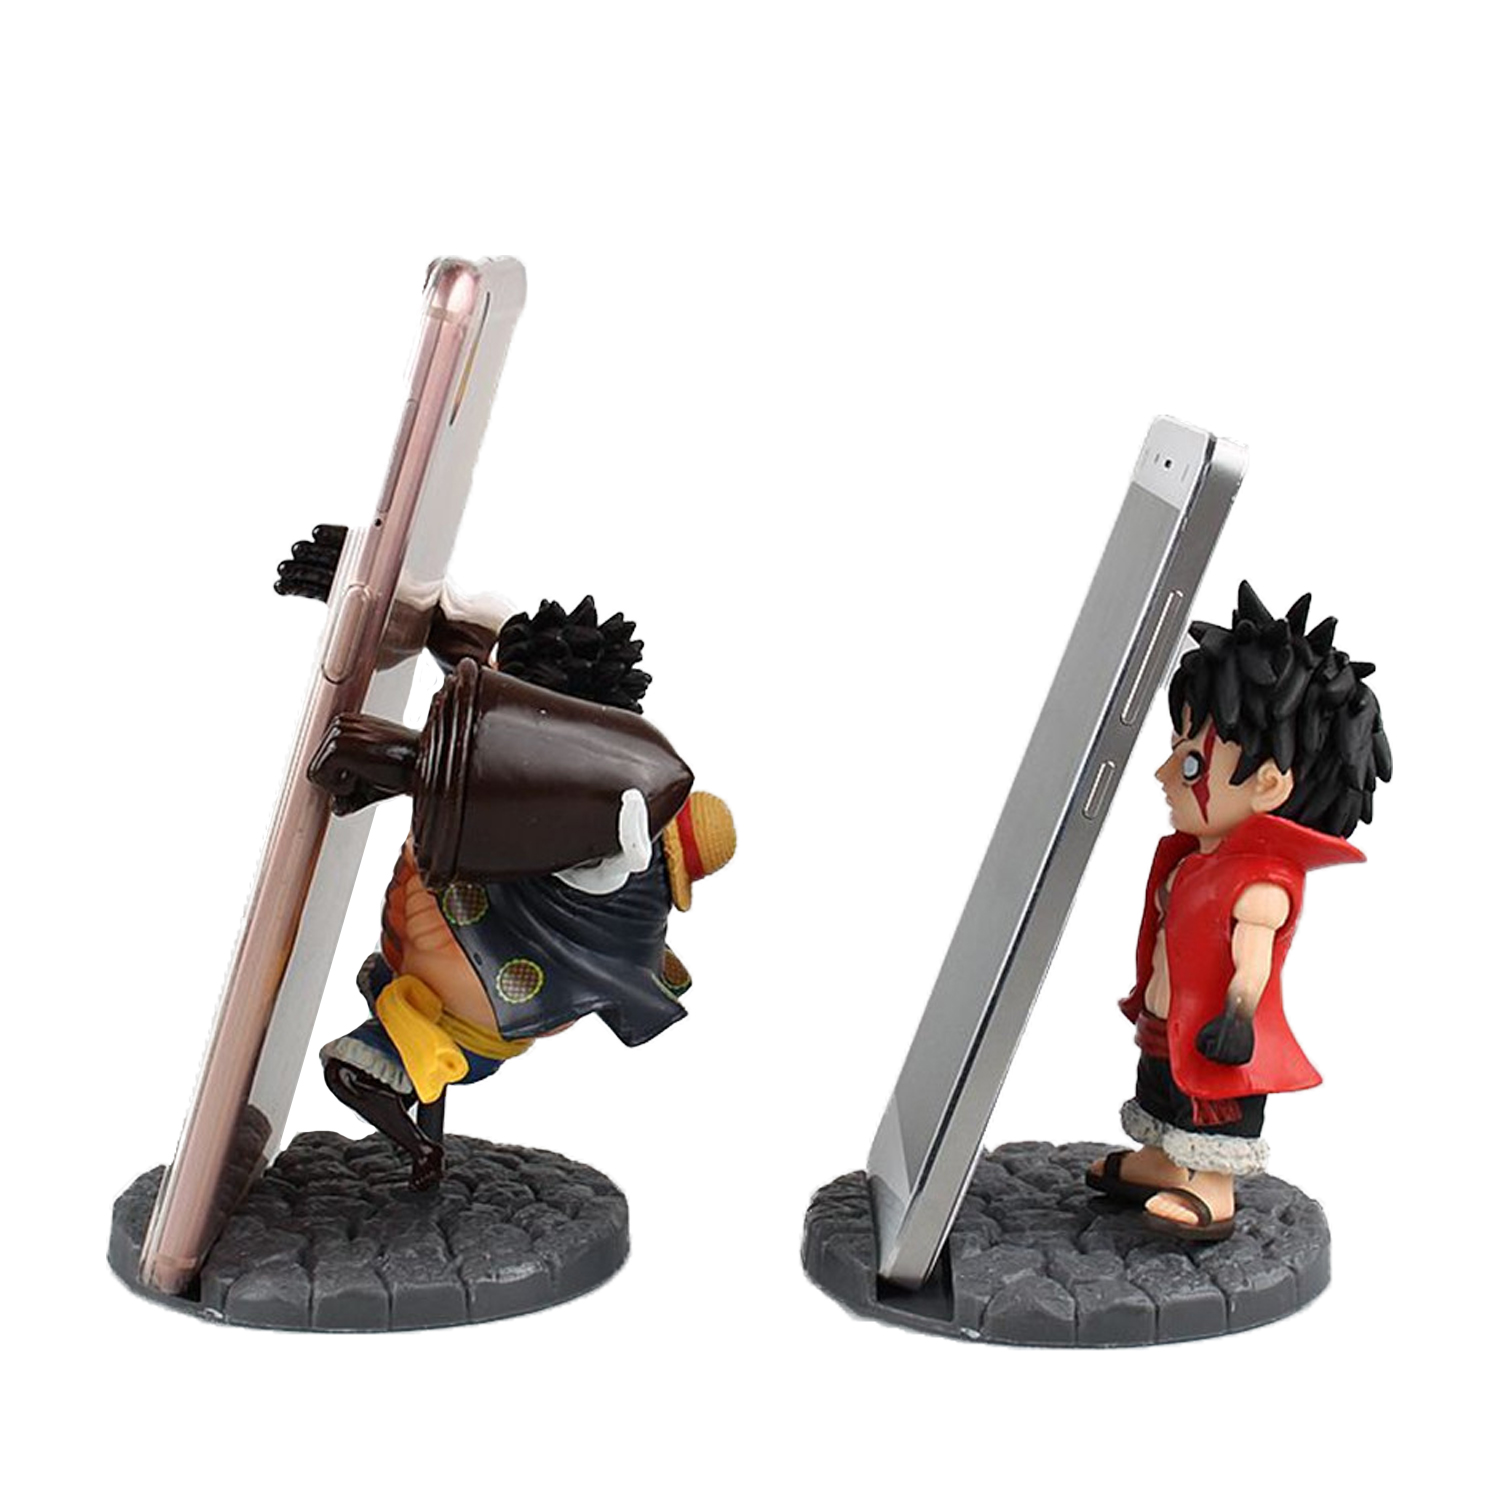 Chanycore Anime ONE PIECE Luffy Mobile phone stand 11cm cute Action Figures PVC onepiece toys doll model collection